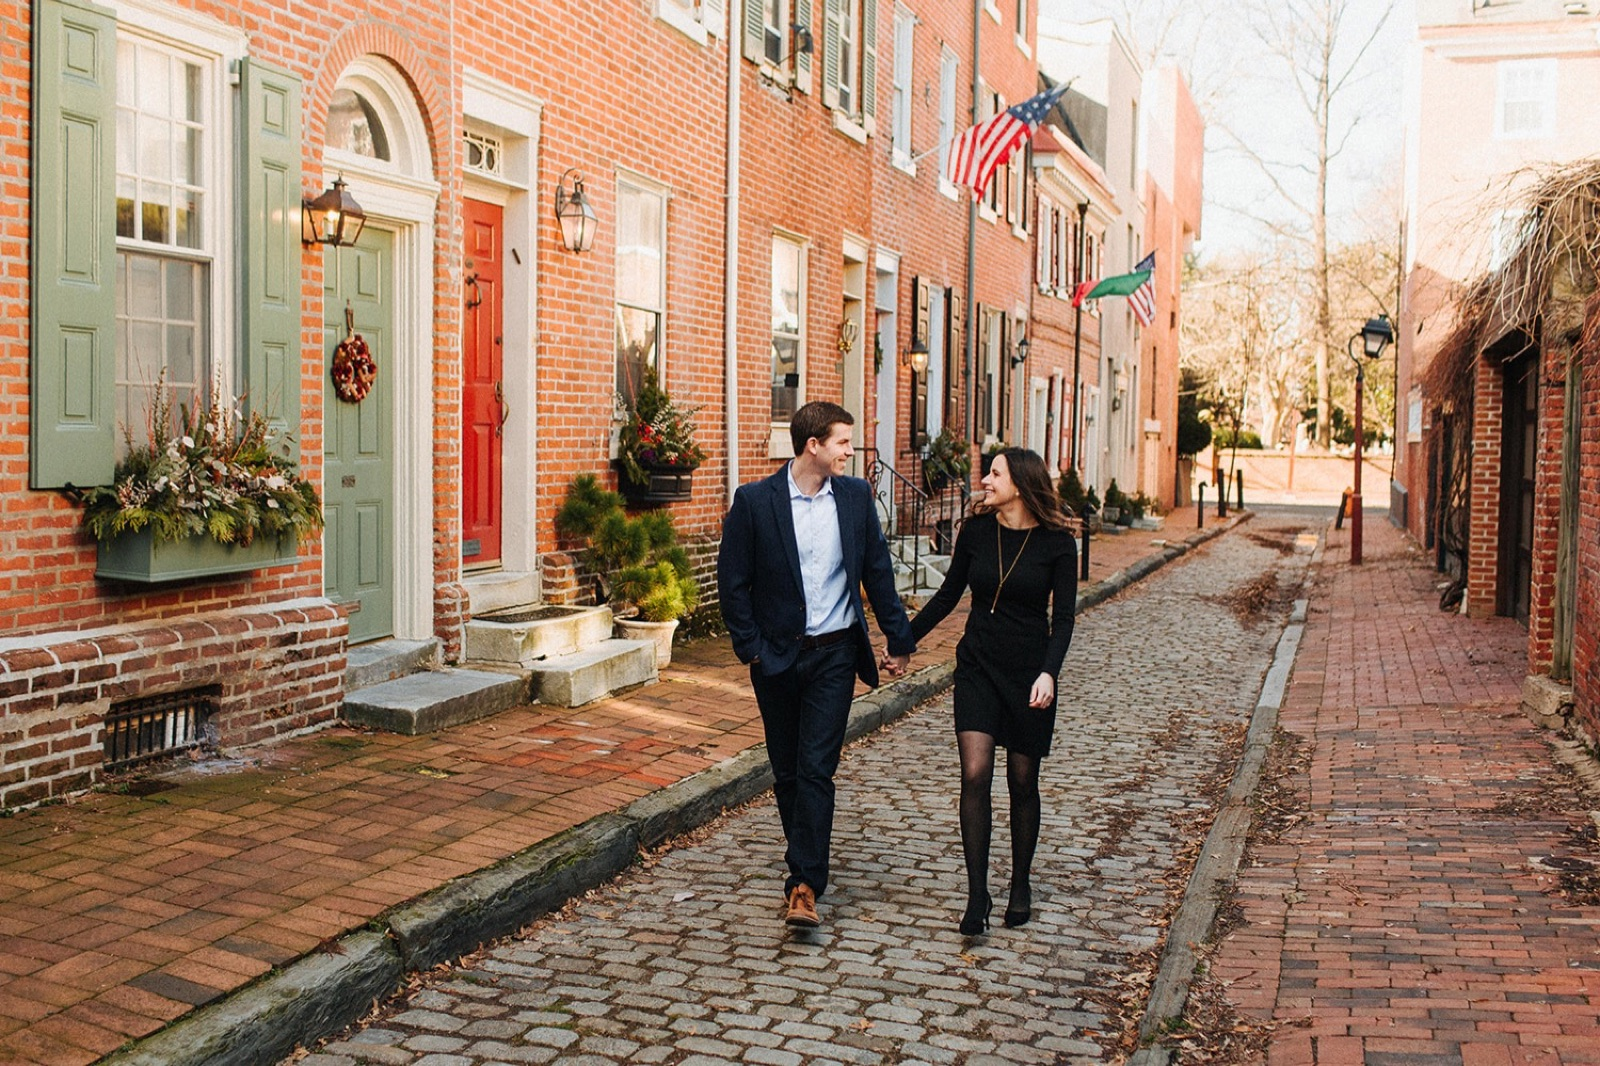 01_Headhouse_photography_engagement_philadelphia.jpg